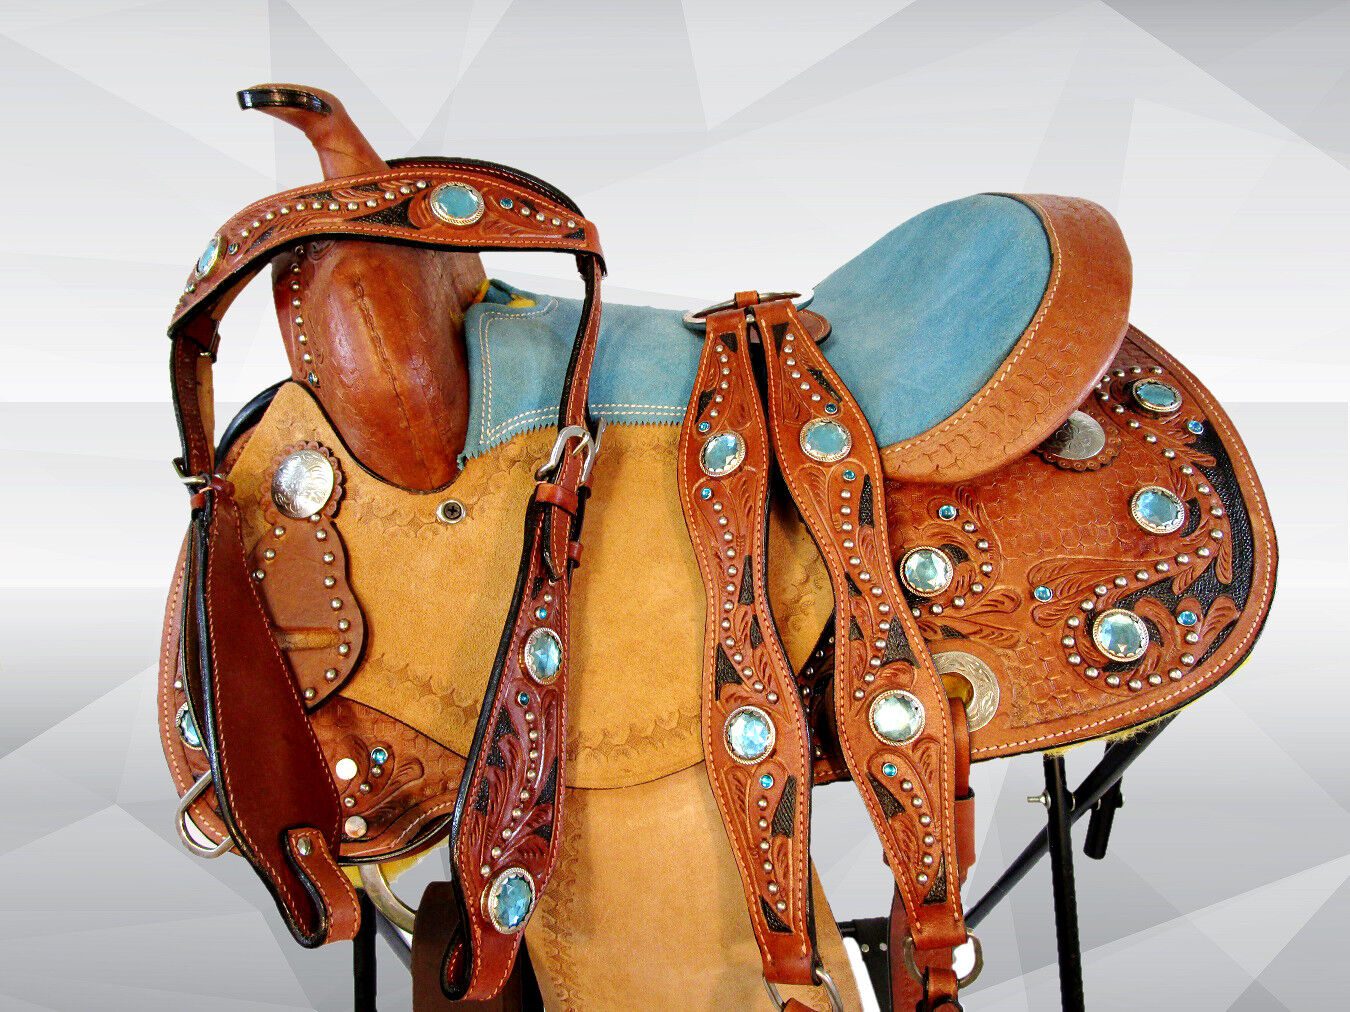 12 13 PREMIUM  LEATHER SHOW STAR TOOLED KIDS  LD BARREL YOUTH WESTERN SADDLE  support wholesale retail